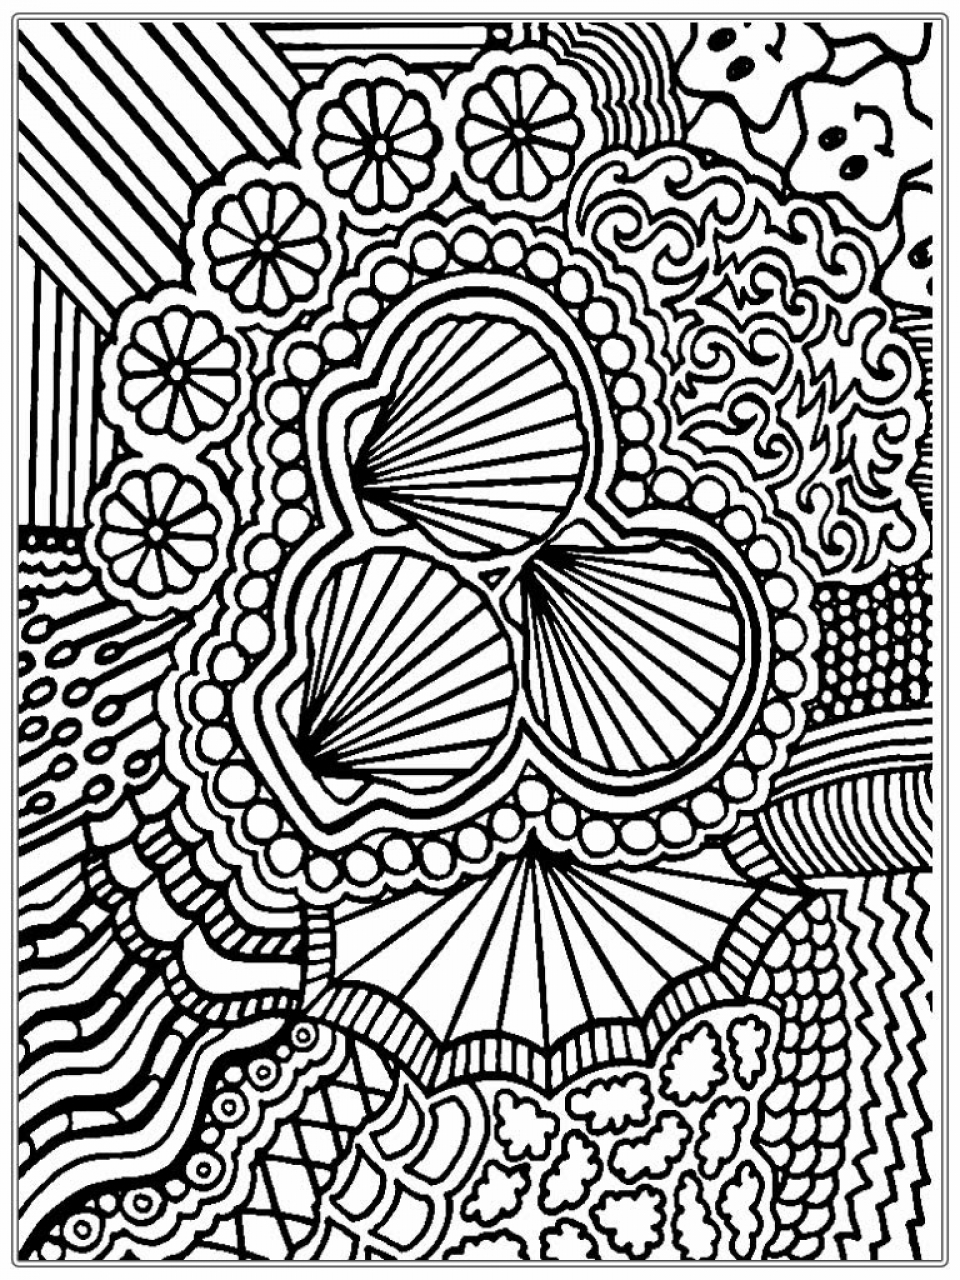 cool abstract coloring pages cool coloring pages 70 really cool images for free printable pages cool abstract coloring